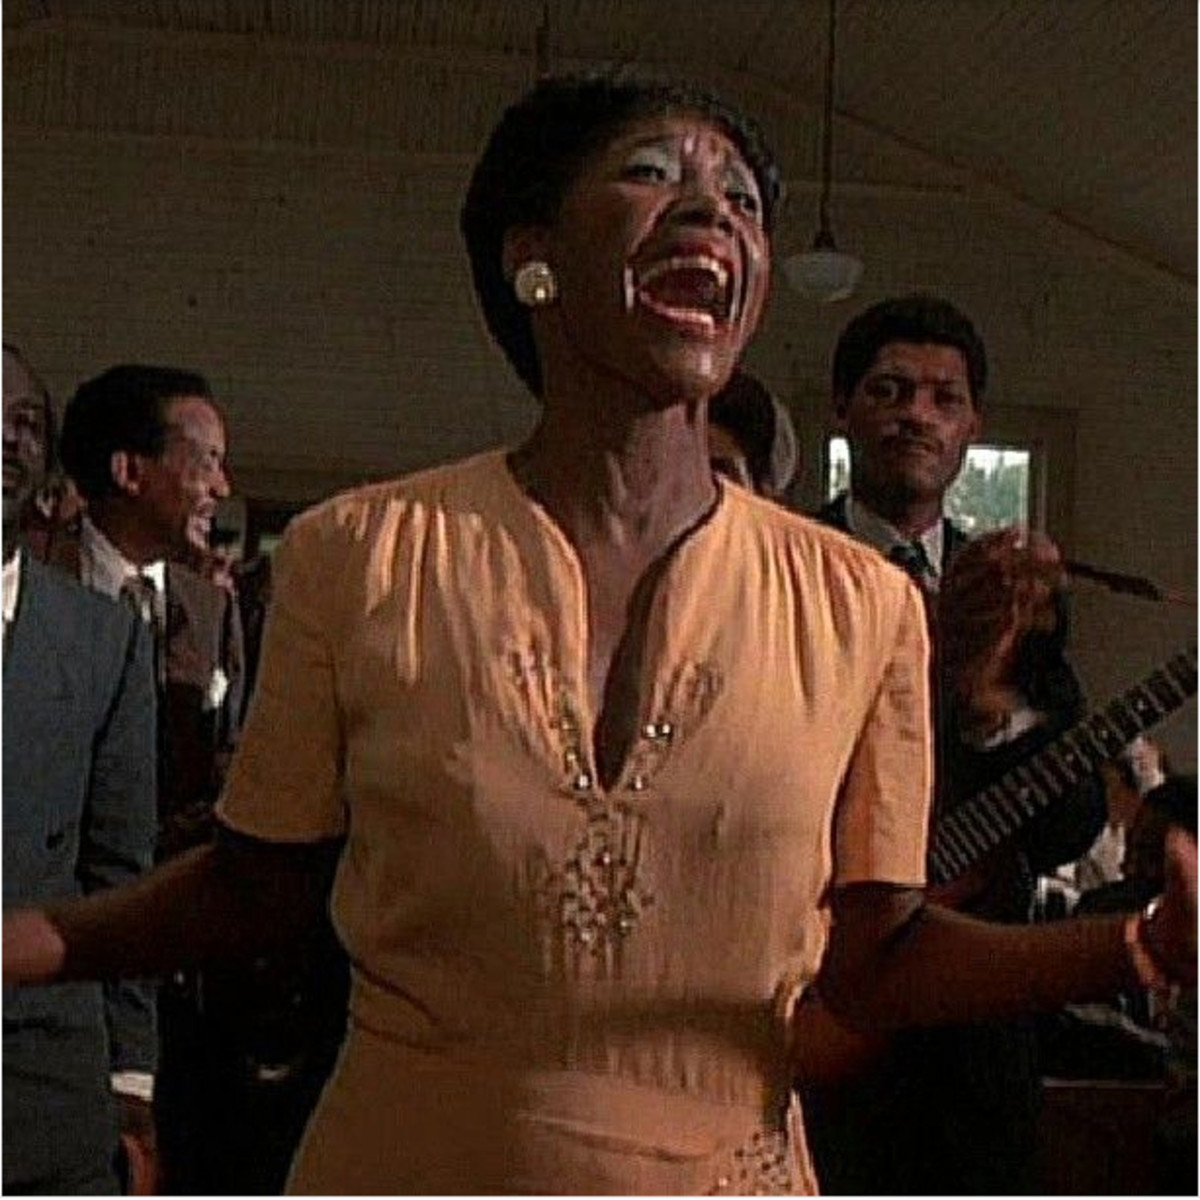 In a dynamic scene near the end of Steven Spielberg's 1985 winter blockbuster The Color Purple, the character Shug Avery engages in a soul stirring rendition of a gospel song called God Is Trying To Tell You Something.